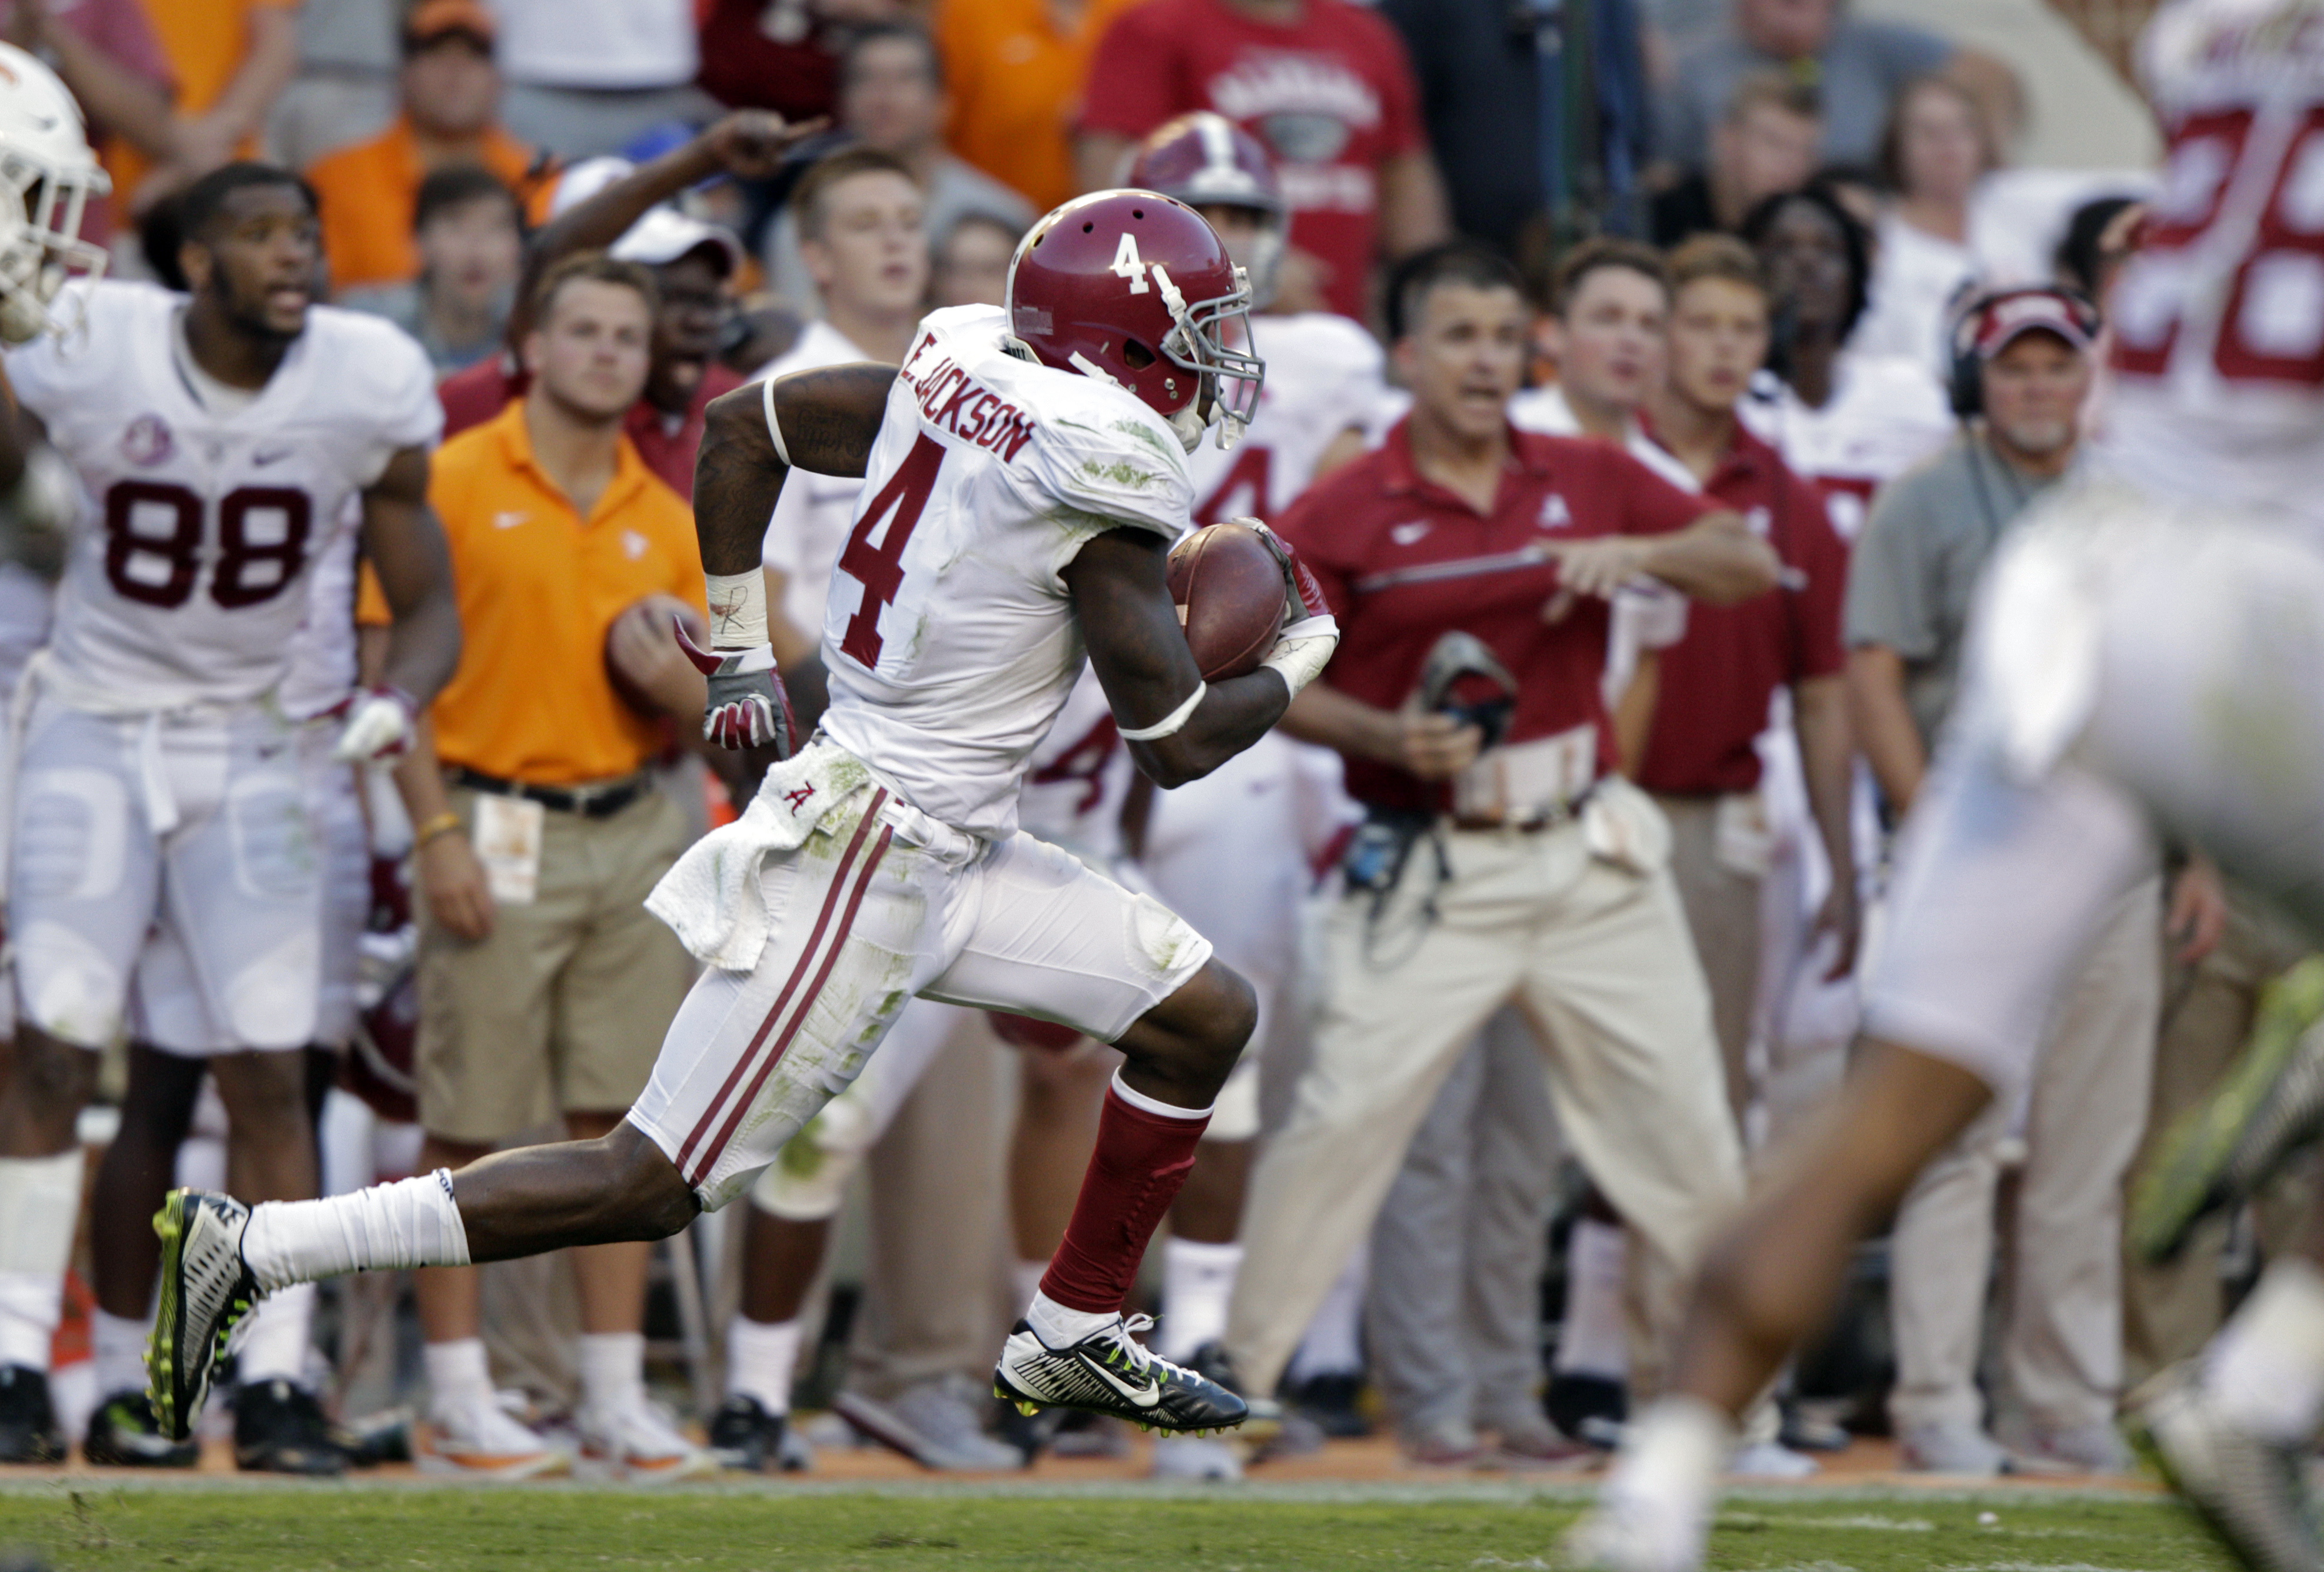 FILE - In this Saturday, Oct. 15, 2016, file photo, Alabama defensive back Eddie Jackson (4) returns a punt for a 79-yard touchdown during the second half of an NCAA college football game against Tennessee in Knoxville, Tenn. Theres not always a right-or-